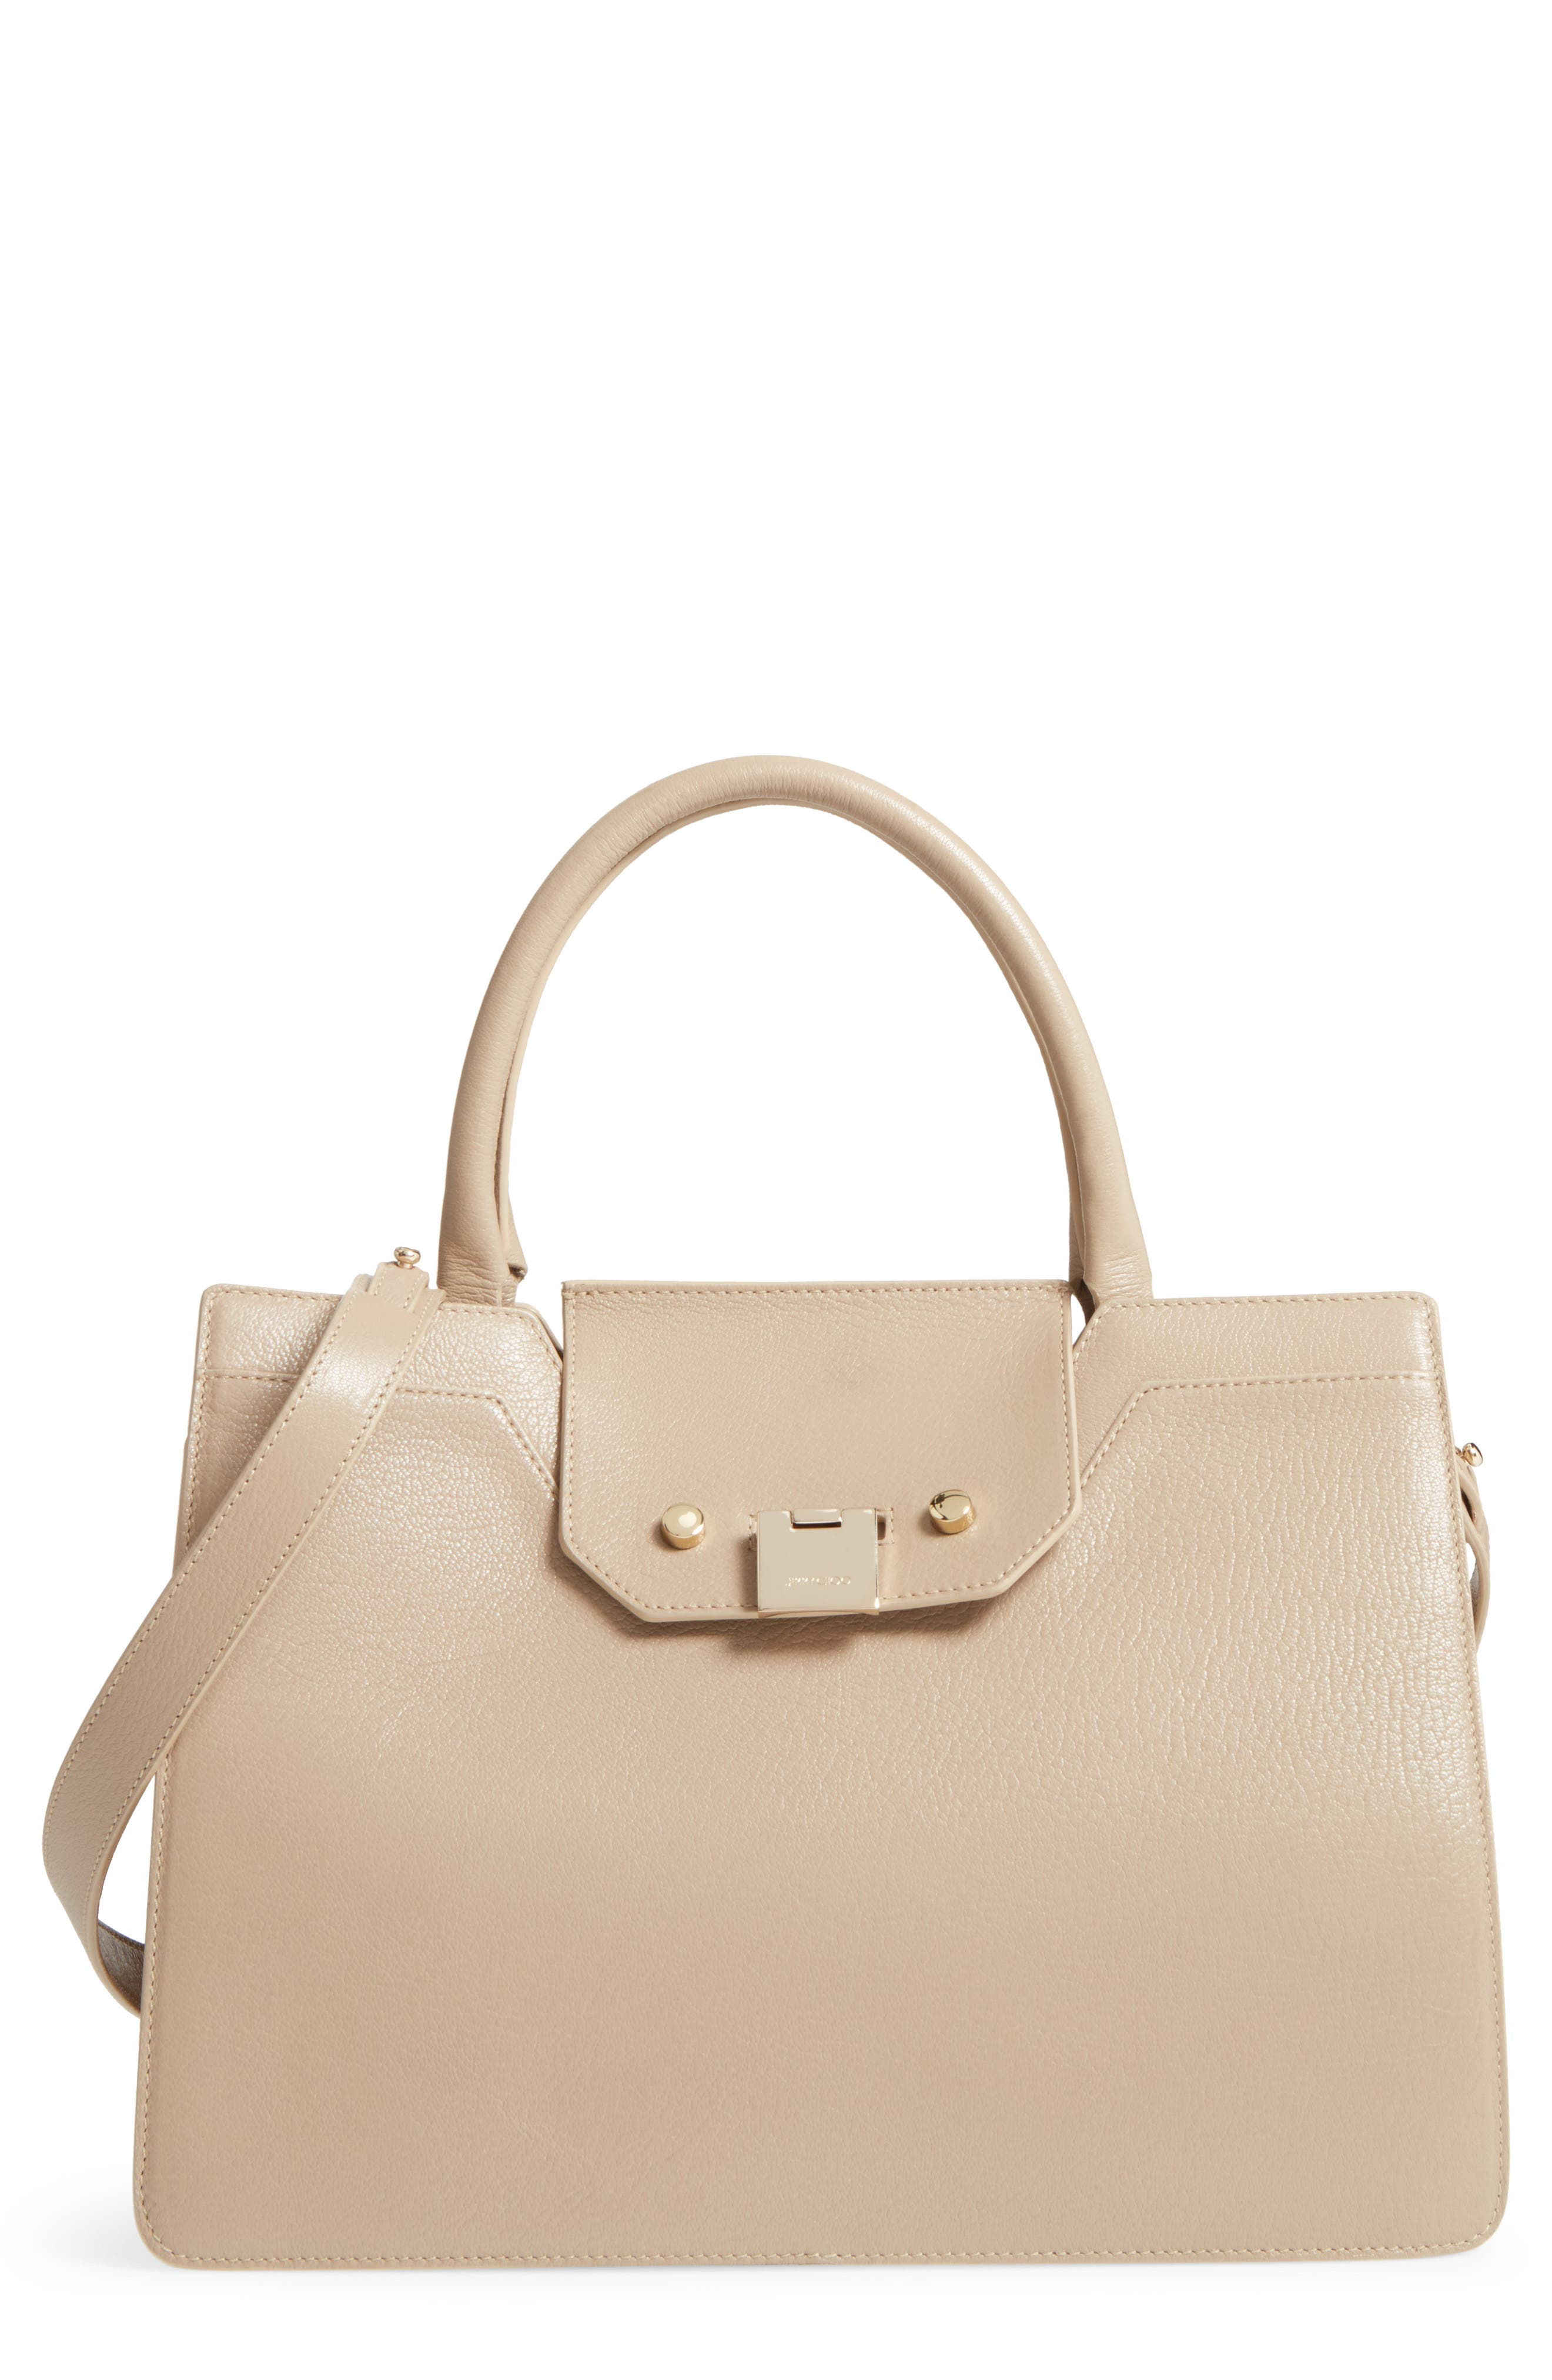 Rebel Leather Tote,                             Main thumbnail 1, color,                             Chai